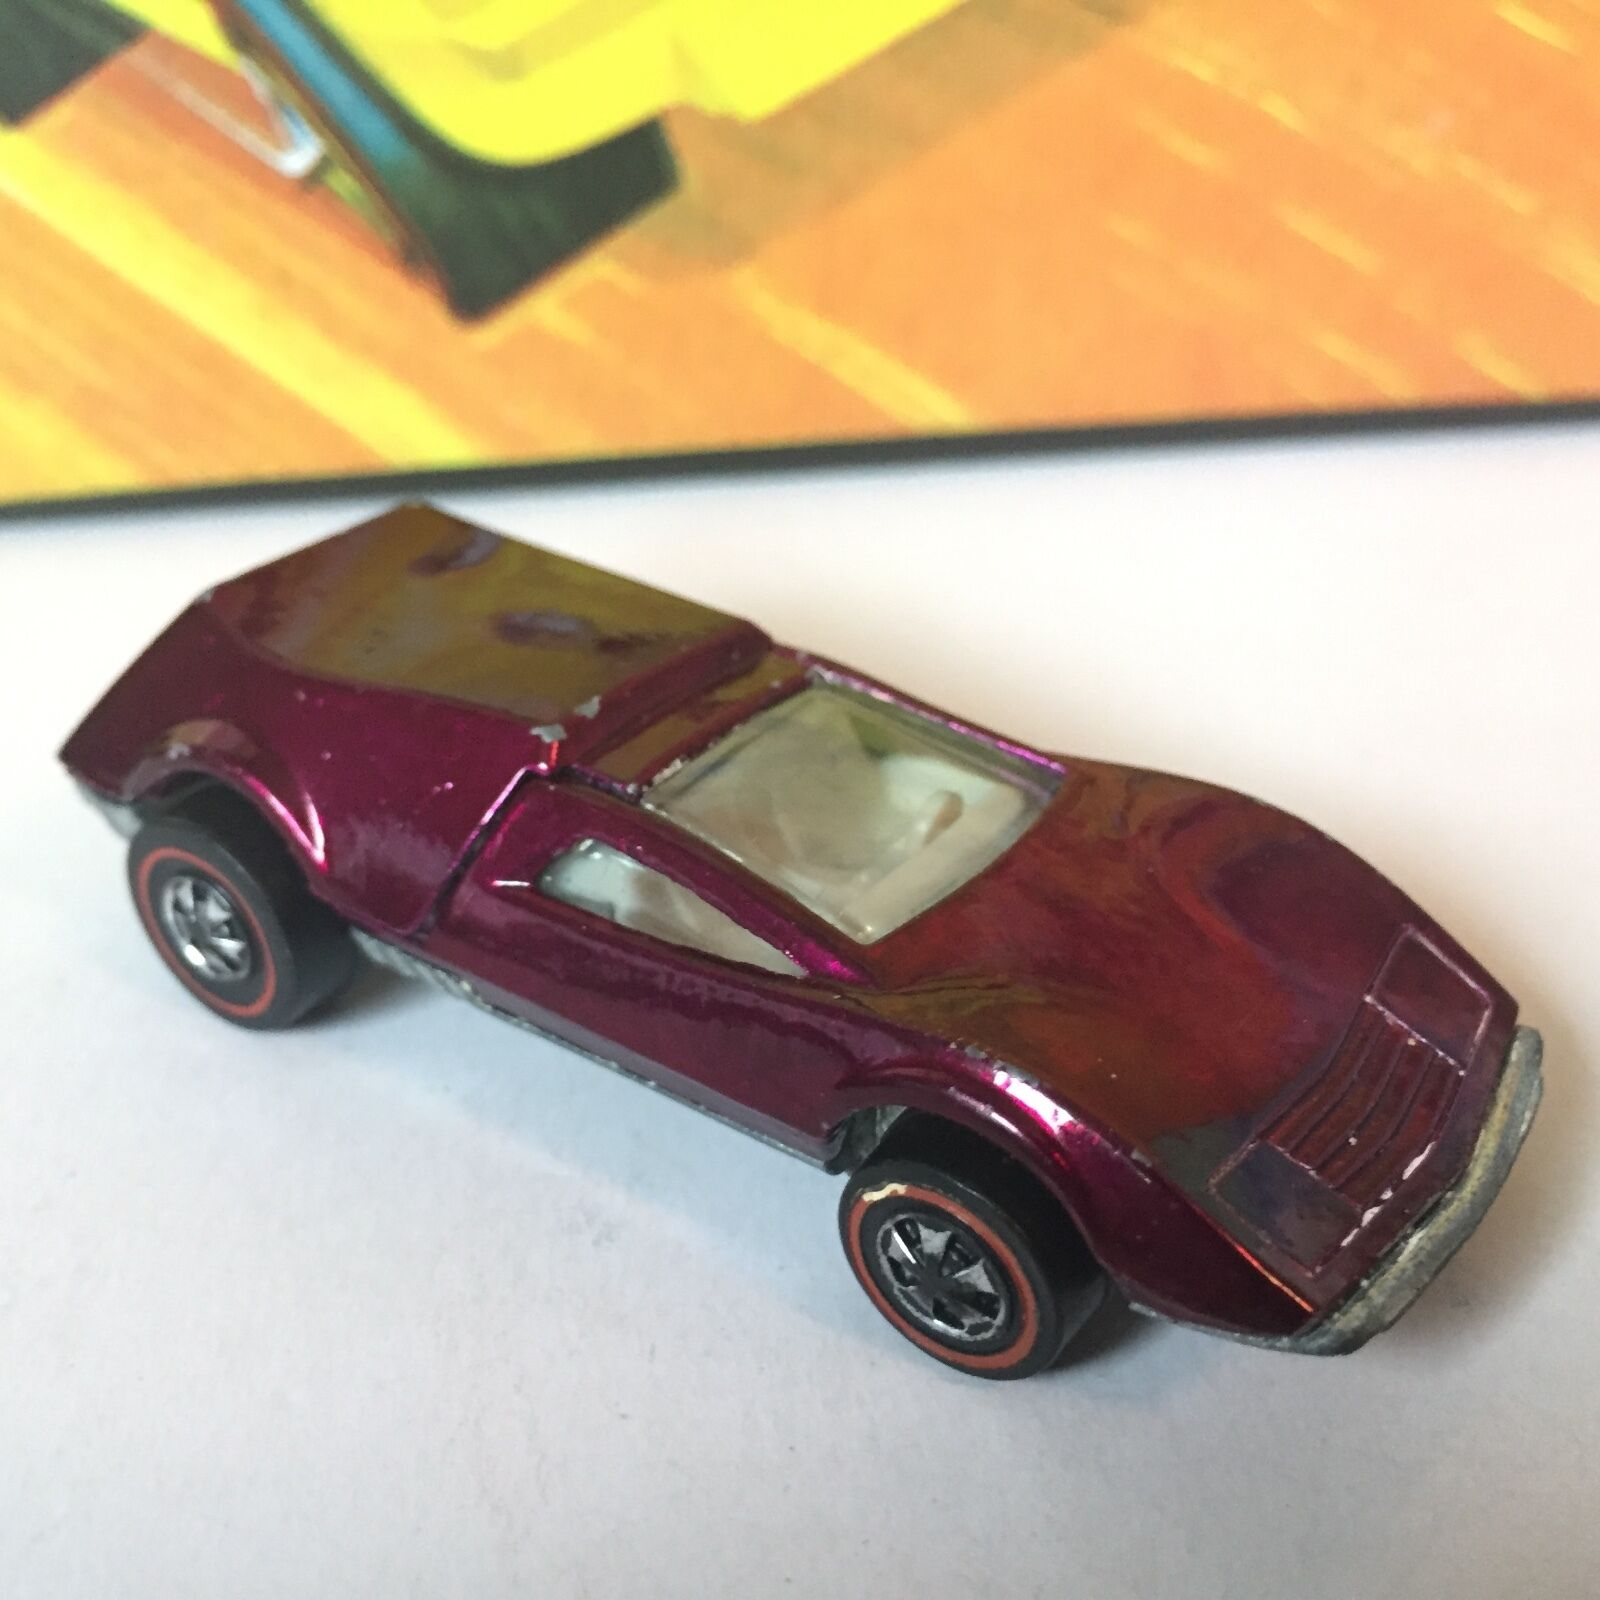 Original Hot Wheels Redline TRI-BABY in MAGENTA   WOW NICE CAR